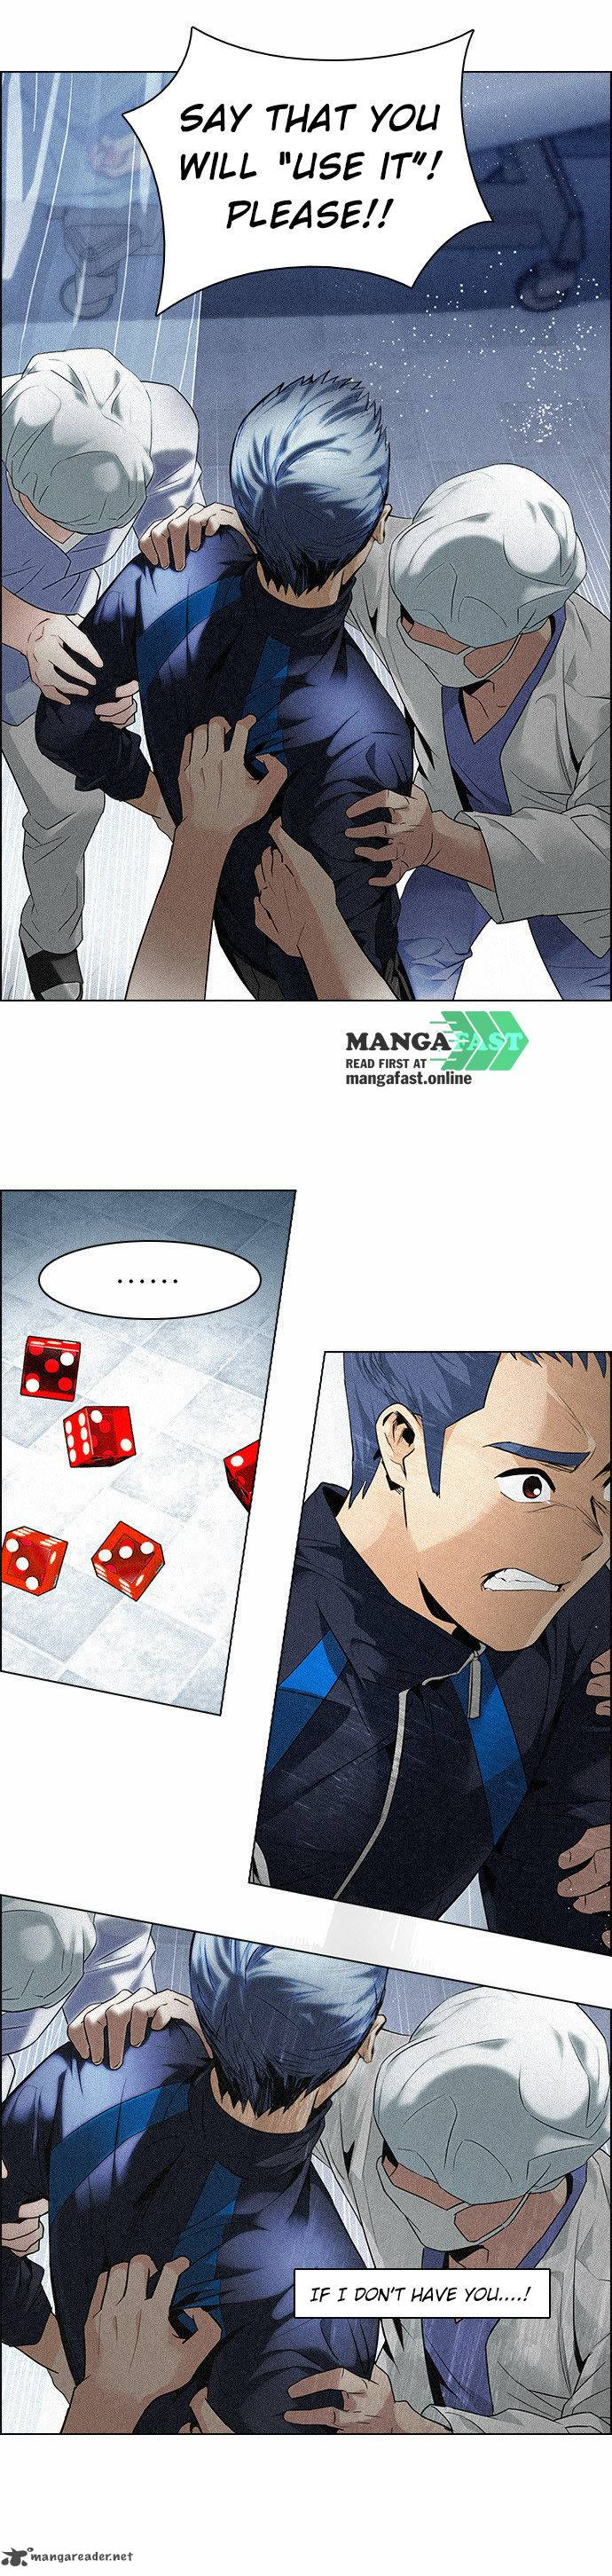 dice_the_cube_that_changes_everything_139_46